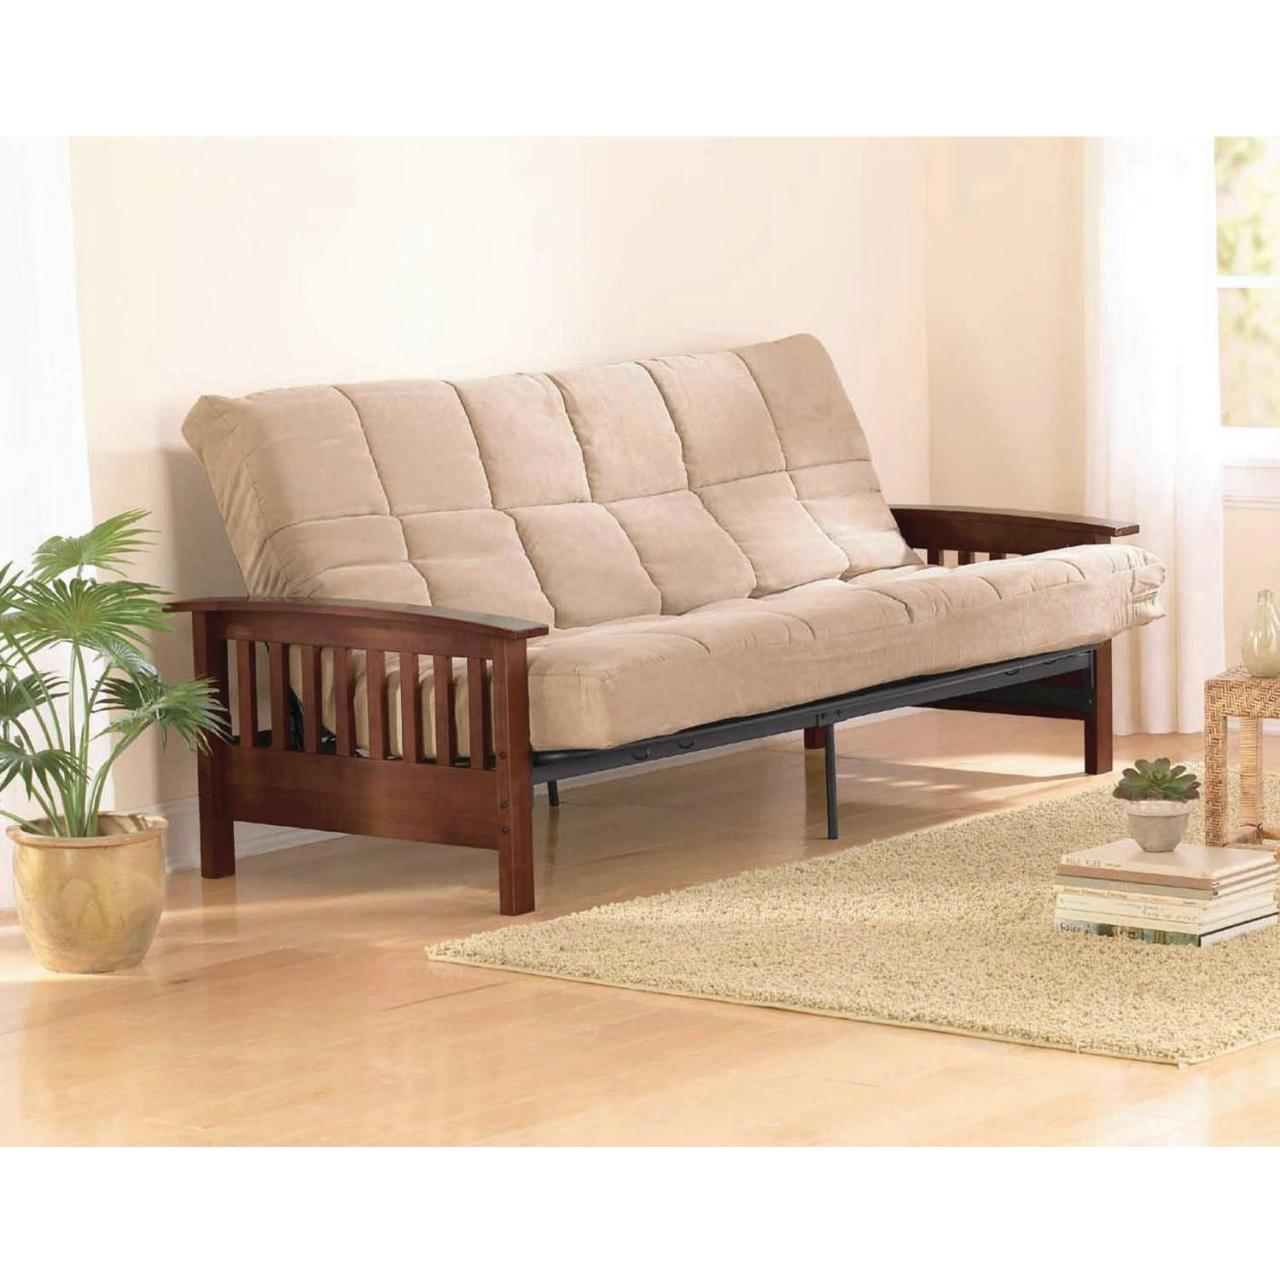 China Wooden Futon Walmart on sale